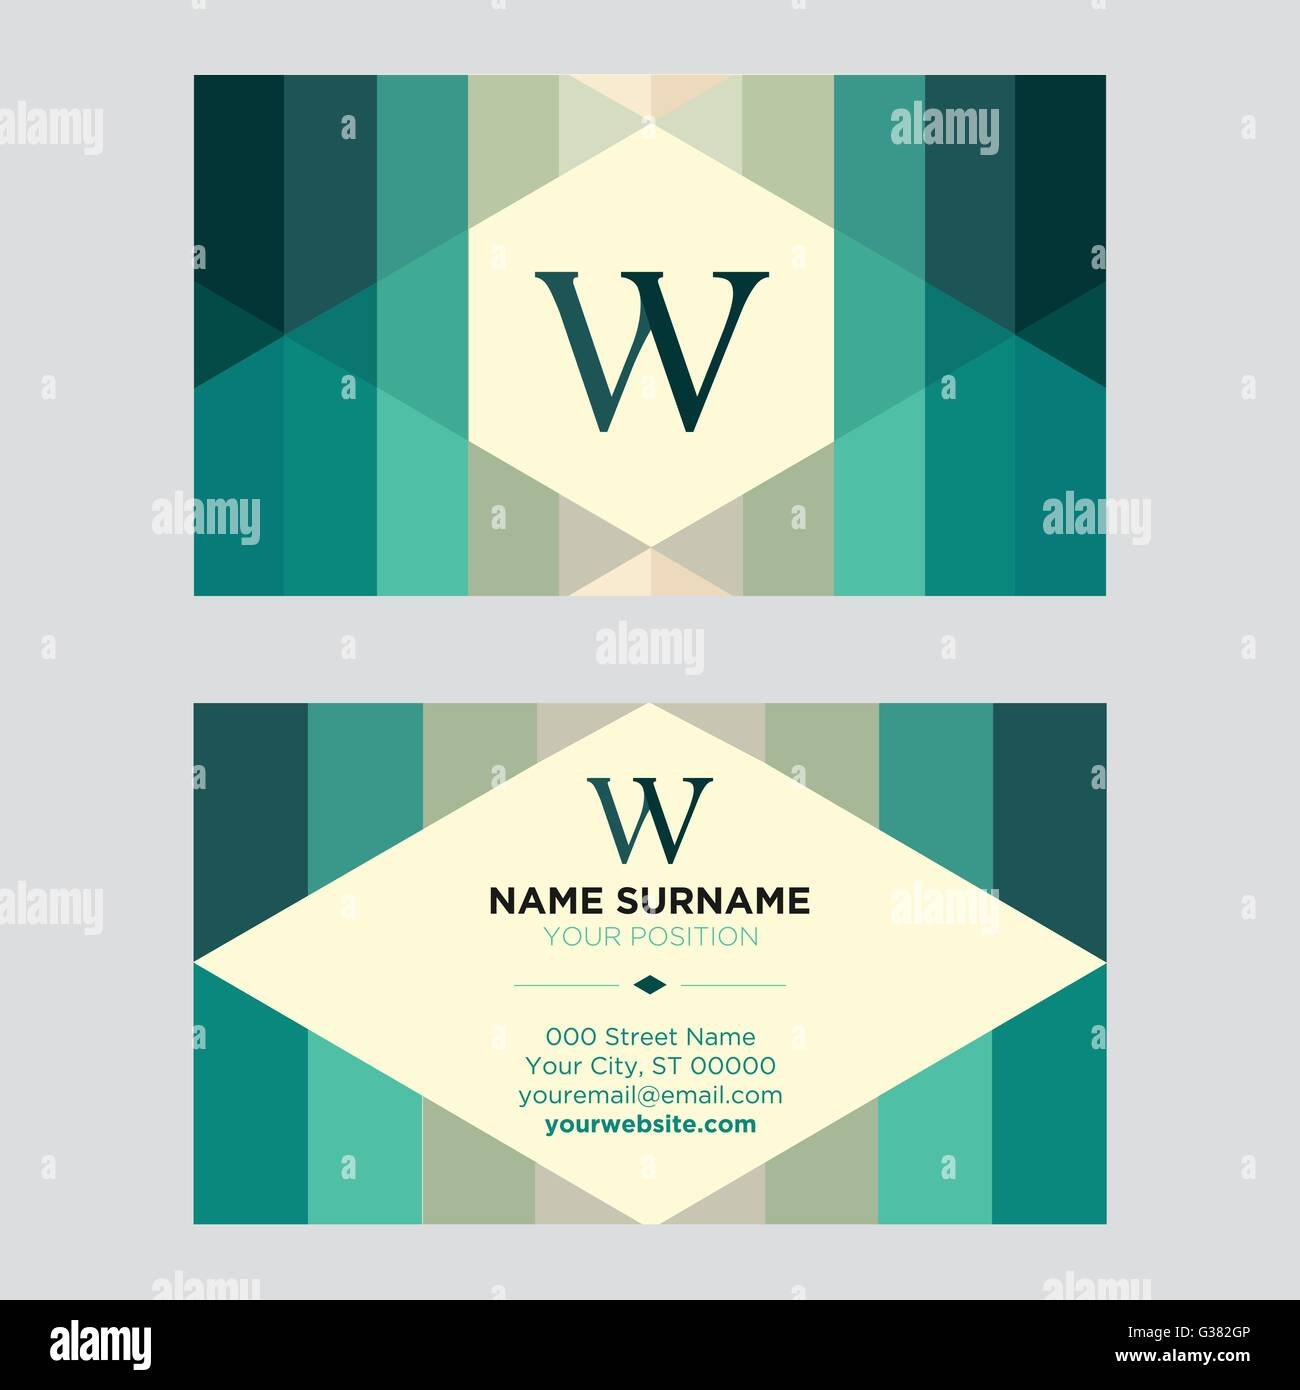 Vintage business card for companies with green color scheme Stock ...